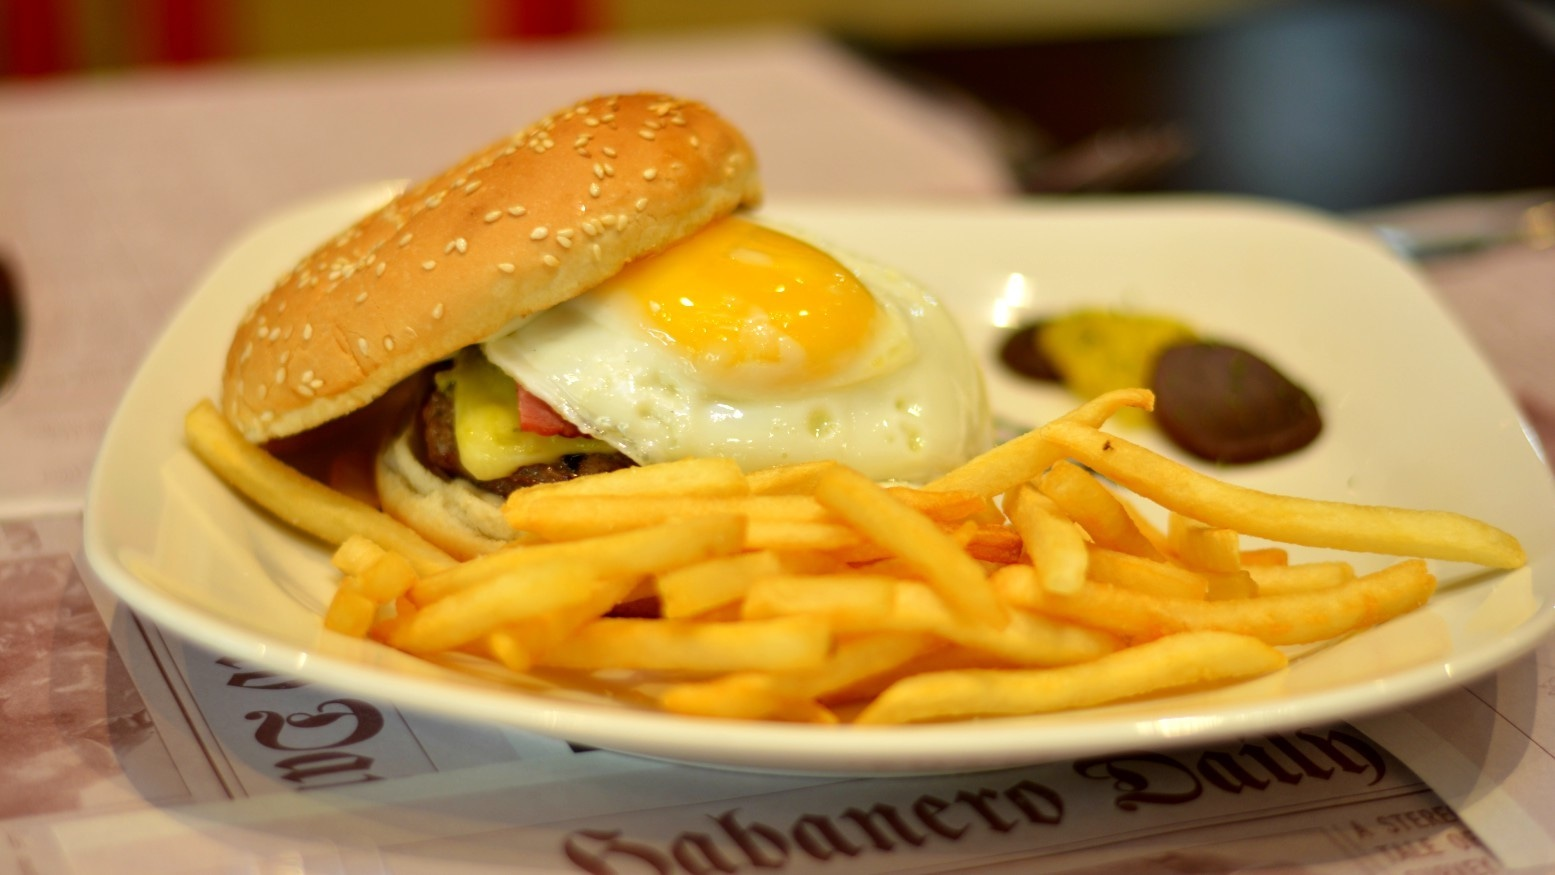 The Acapulco Burger seemed the work of technician, not chef - Publicity photo